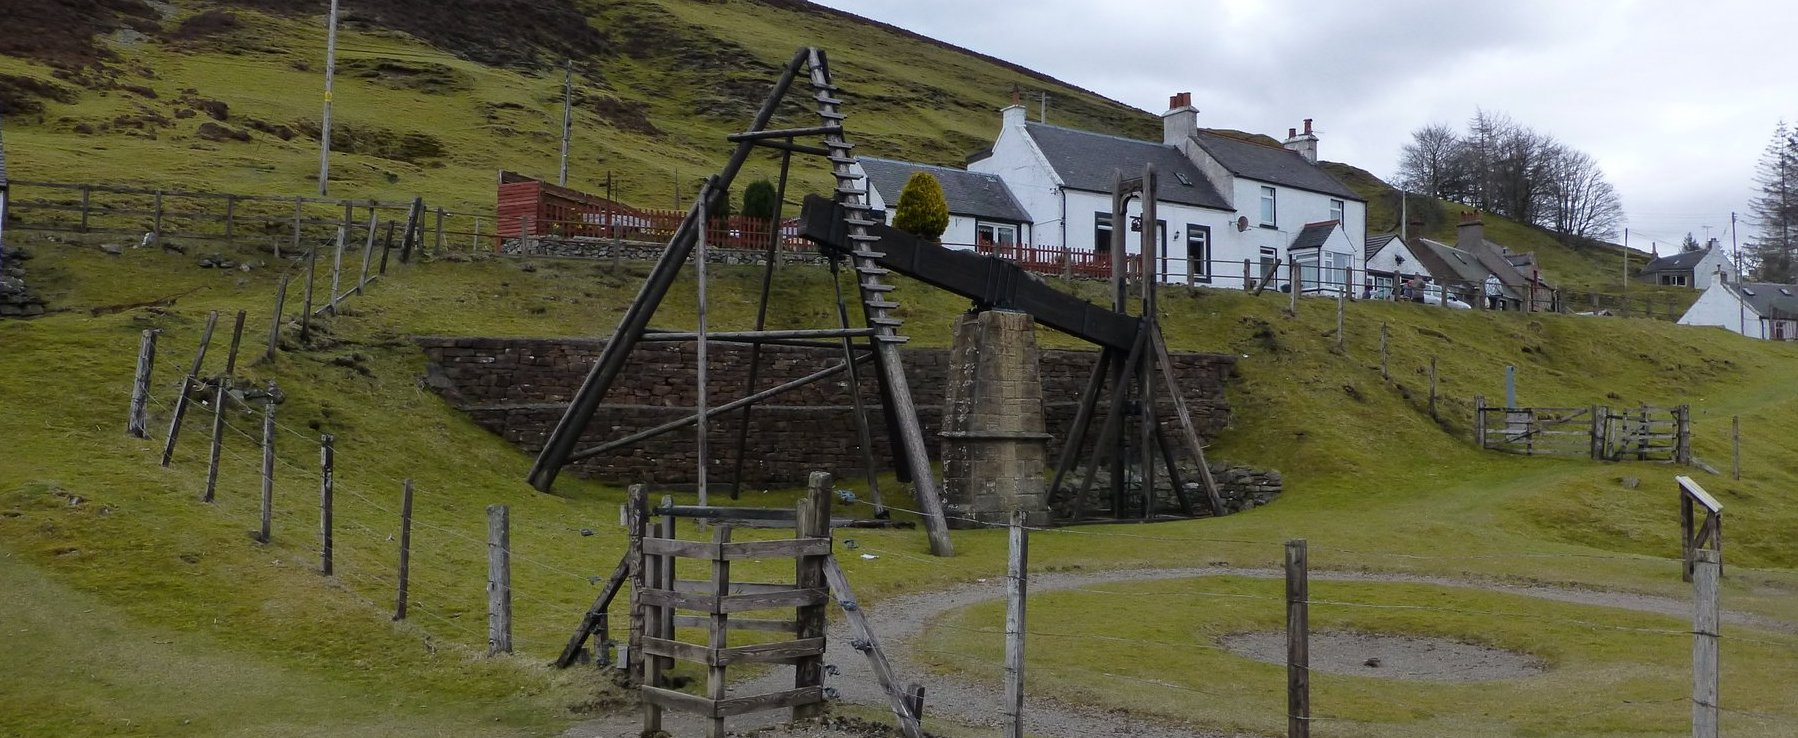 Beam engine in Wanlockhead